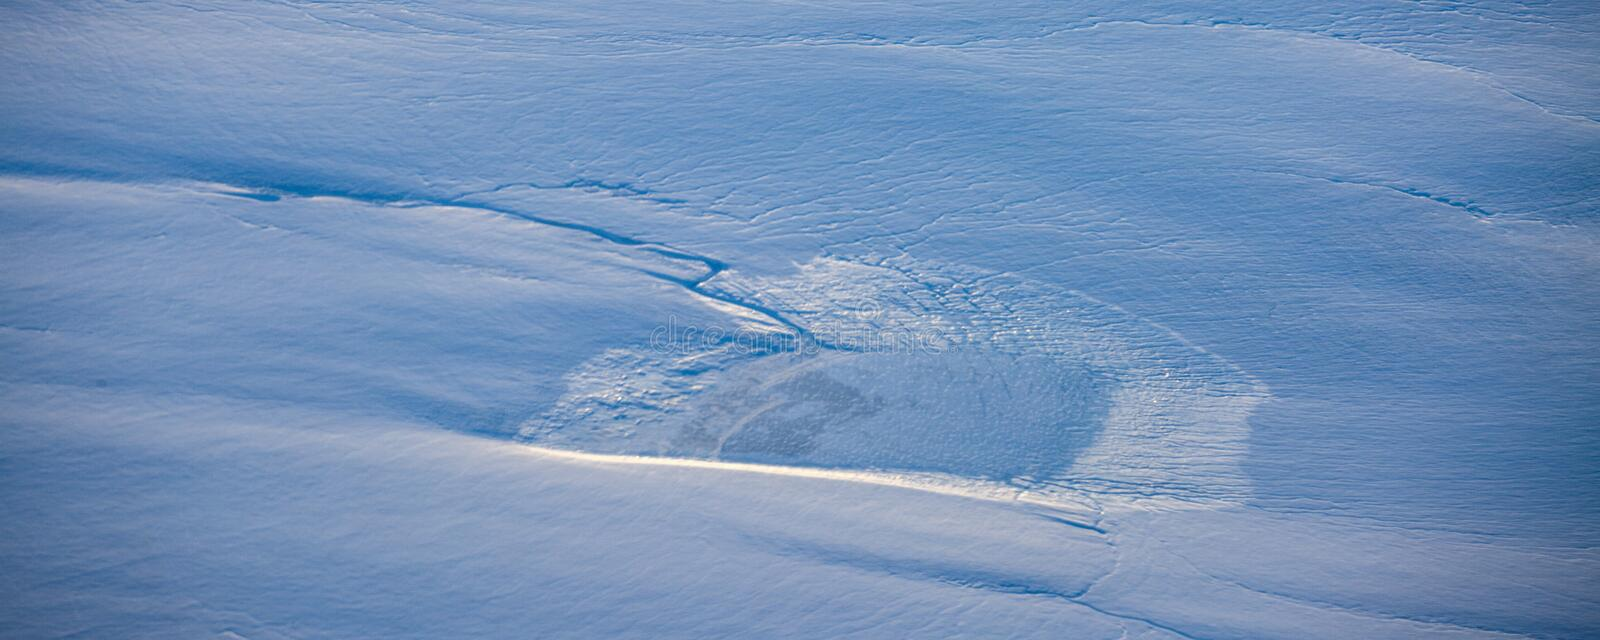 Take a picture of the ice on the bering strait(7) stock images